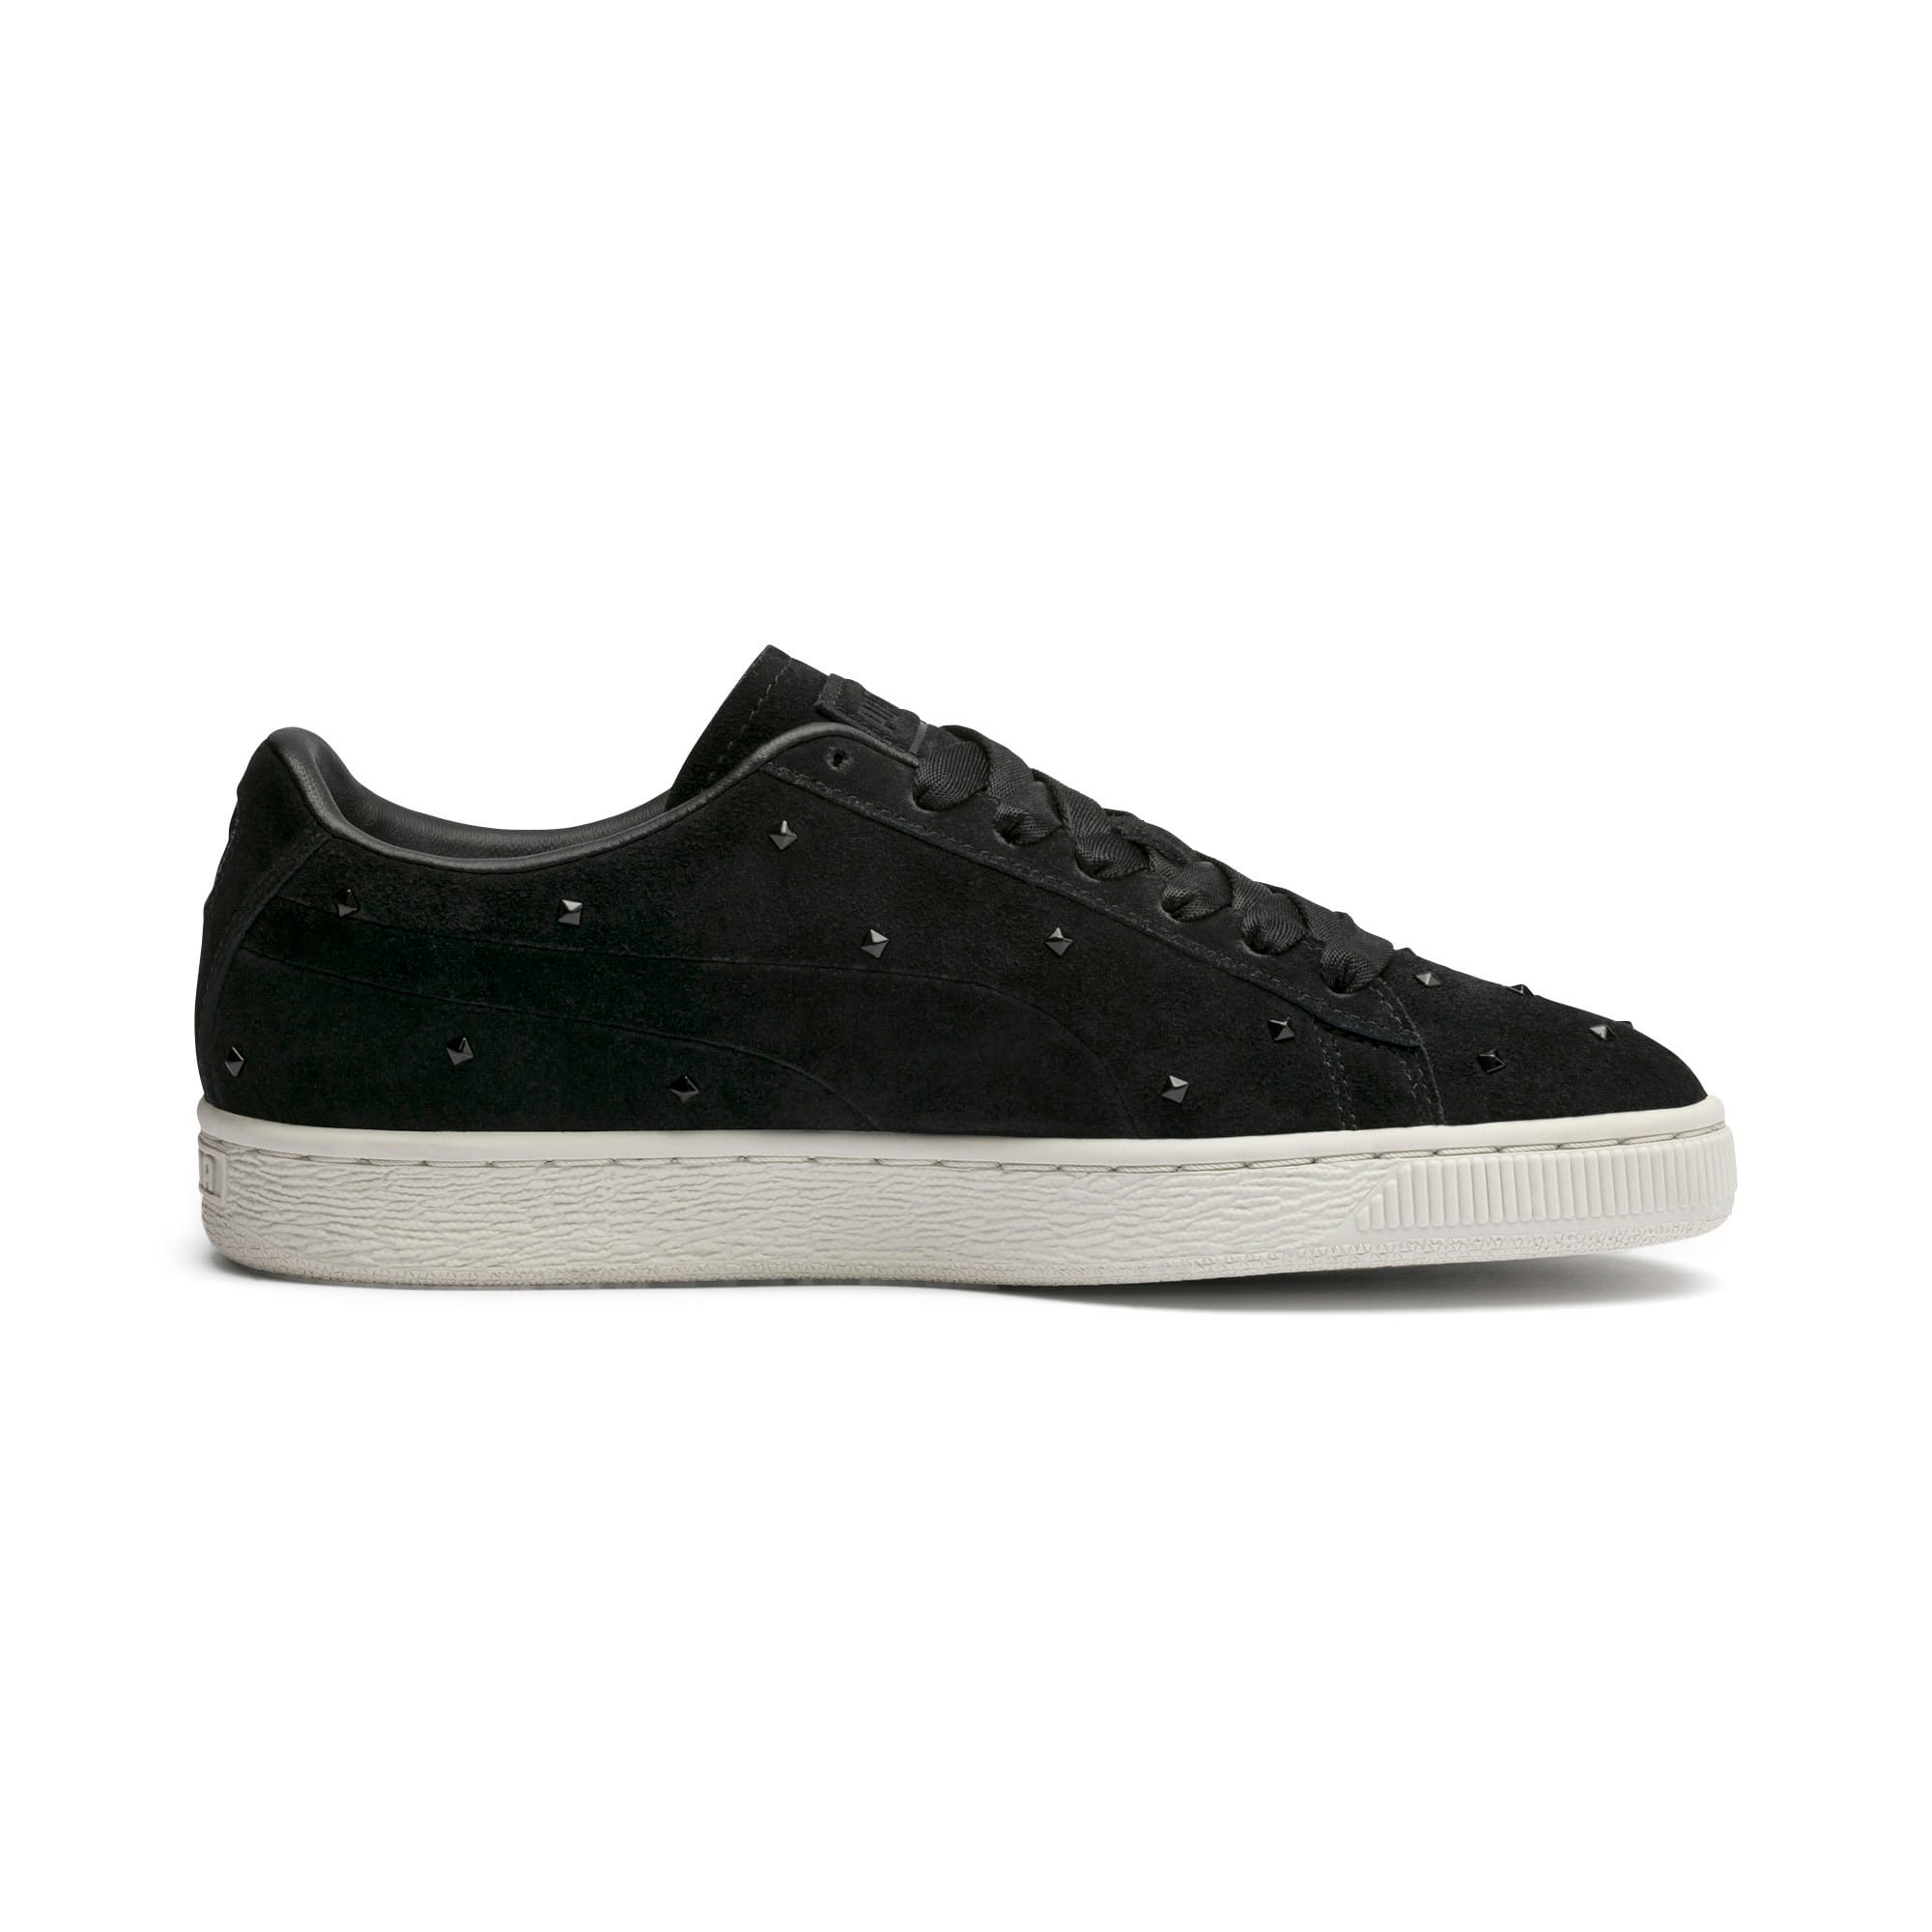 Thumbnail 6 of Suede Studs Women's Trainers, Puma Black-Marshmallow, medium